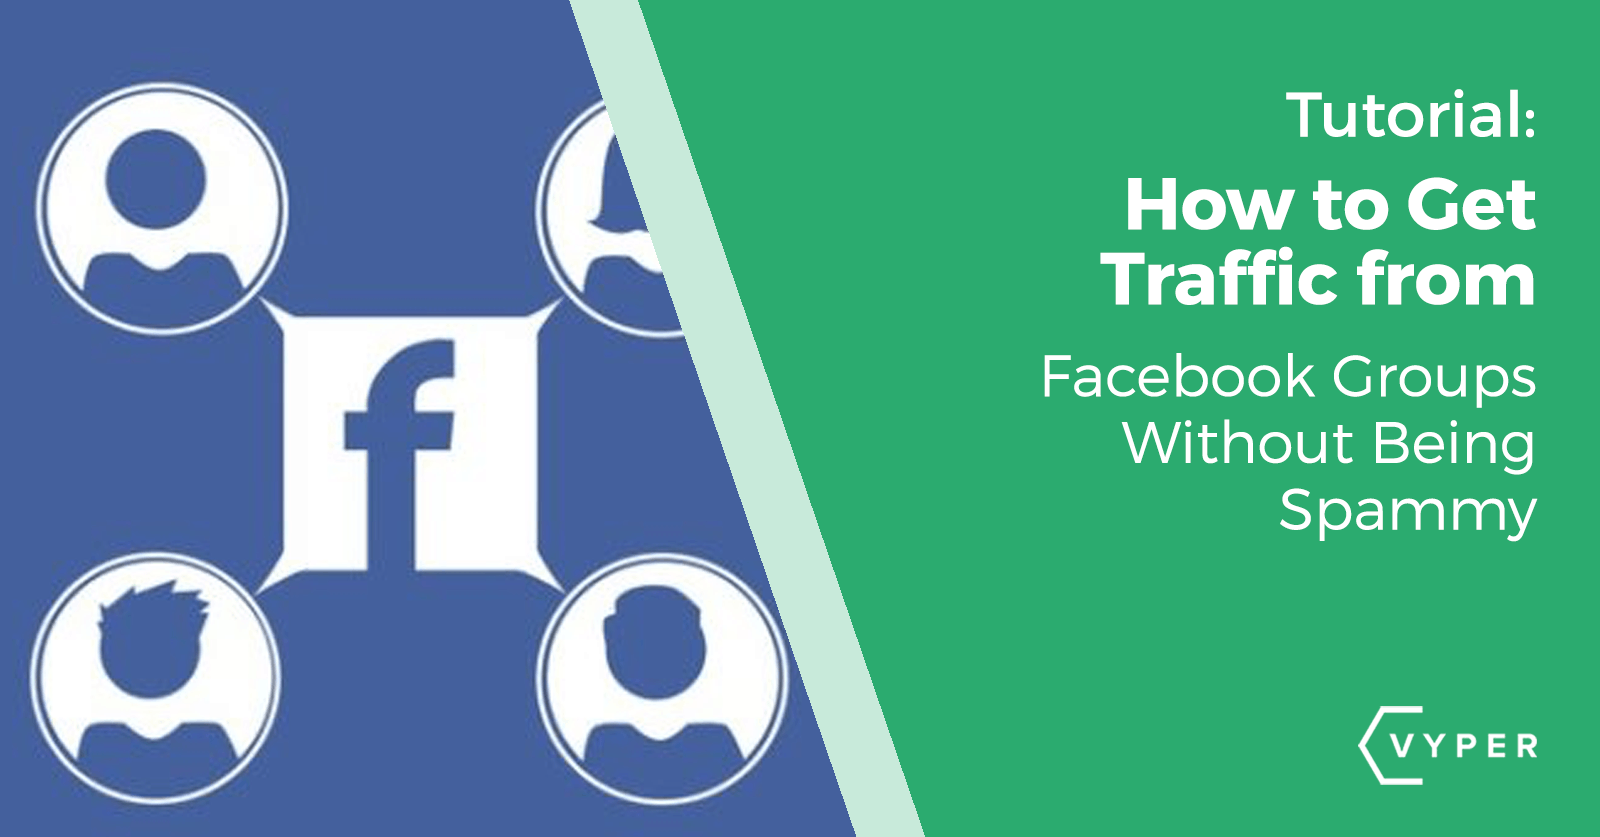 How to Get Traffic from Facebook Groups without Being Spammy